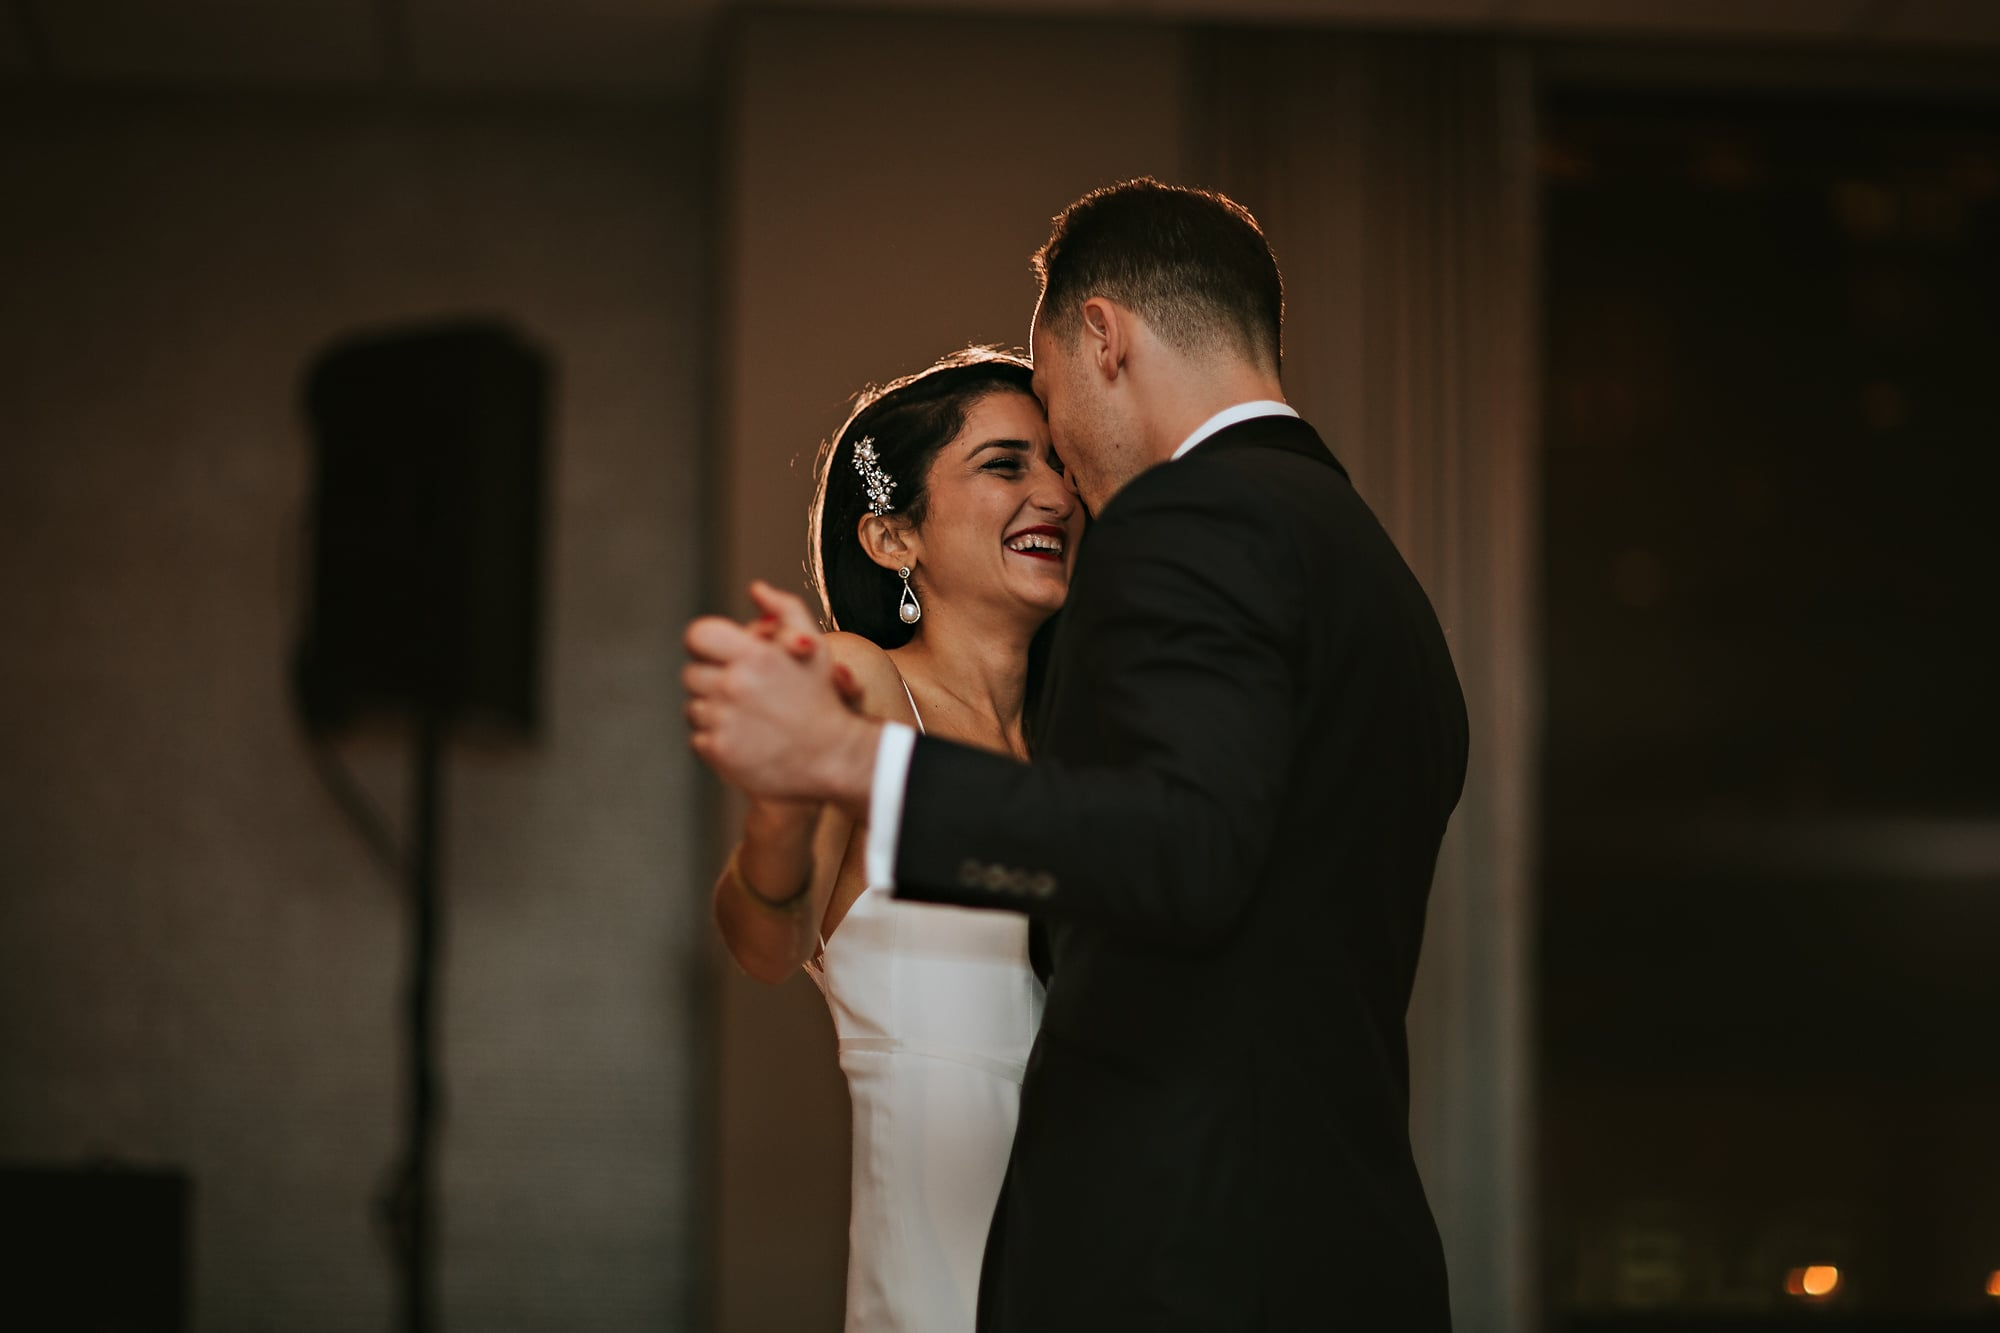 rachel gulotta photography Chicago Wedding-56.jpg